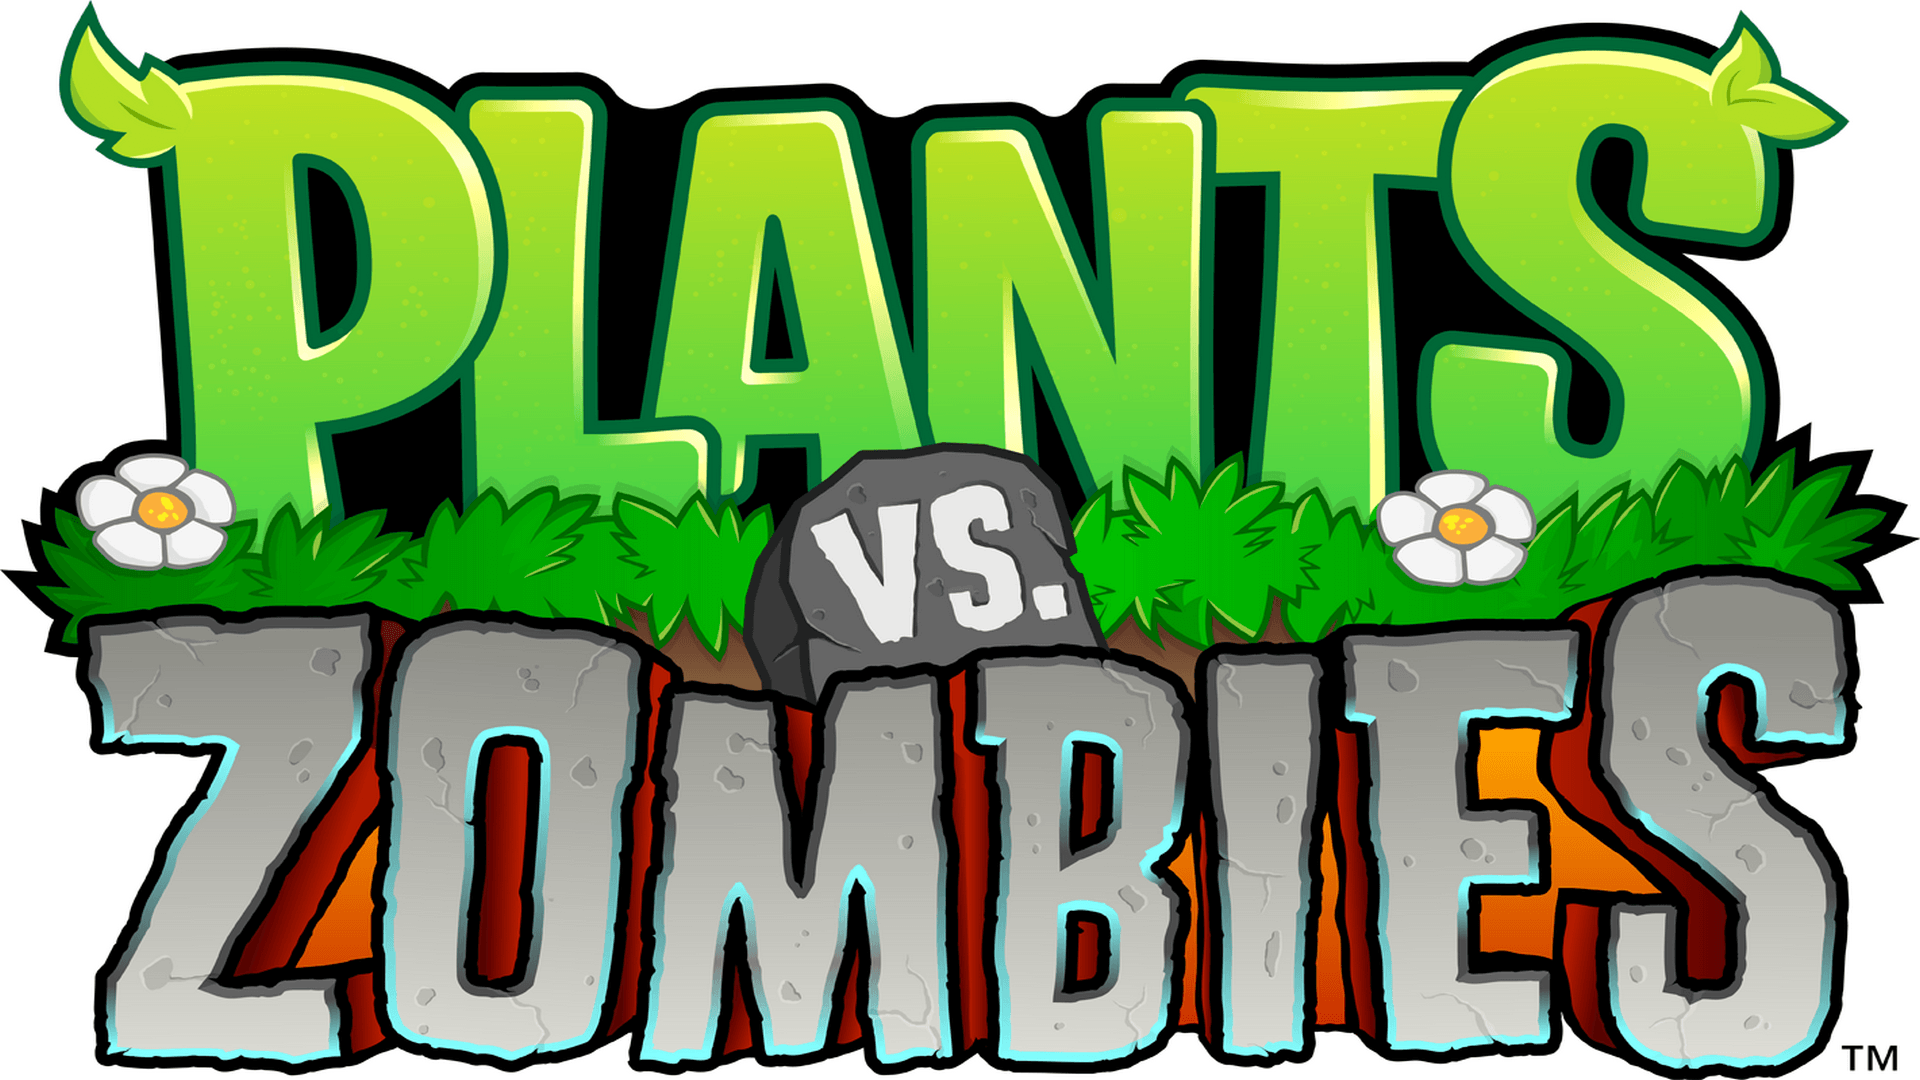 Plant Vs Zombies 2 Wallpaper: Plants Vs Zombies Wallpapers